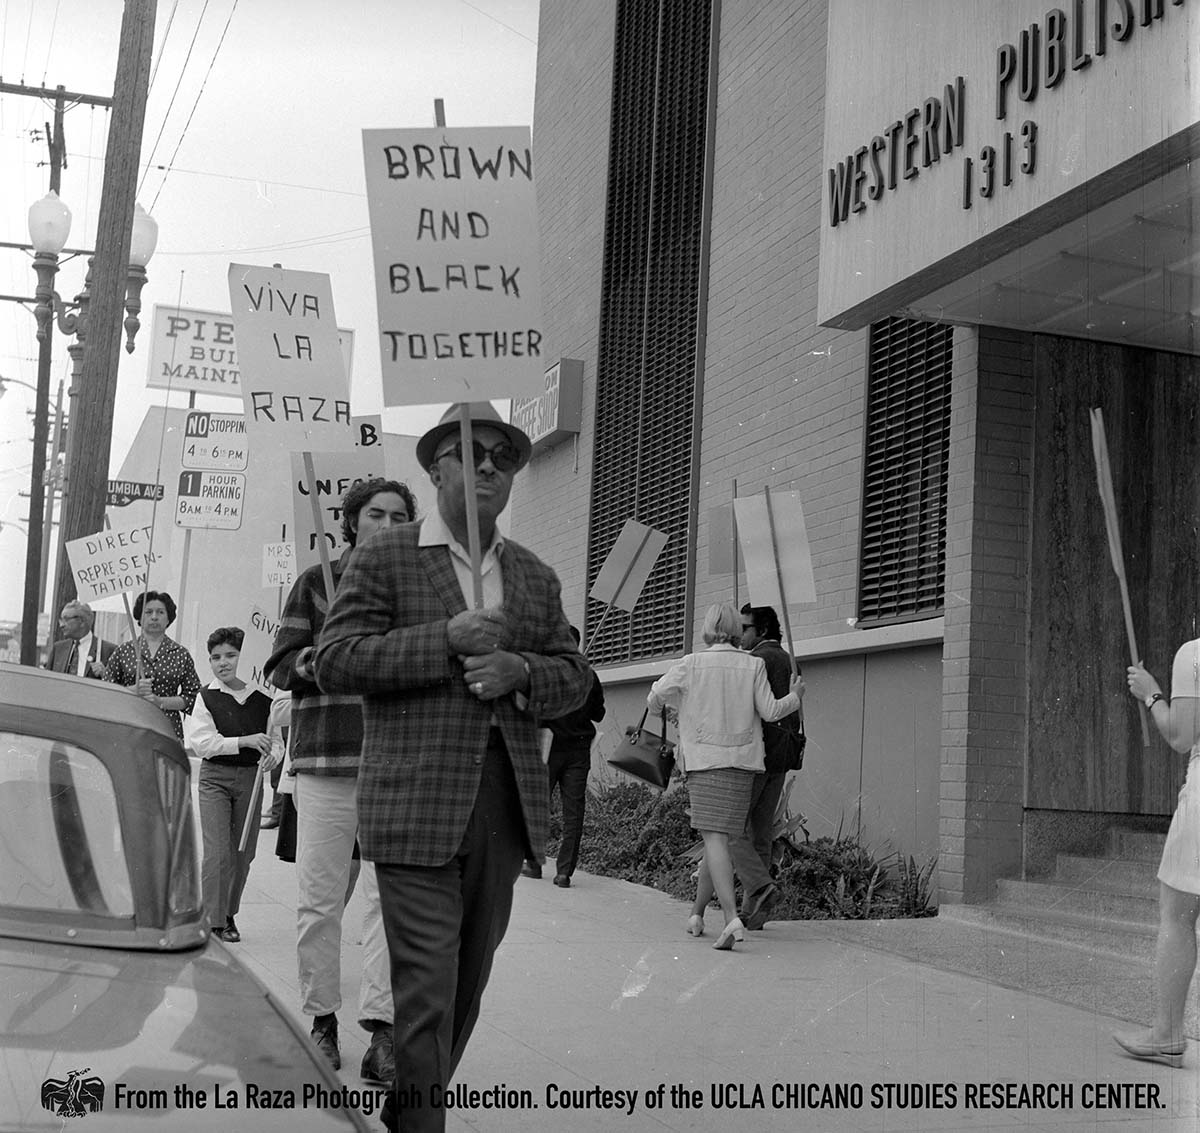 CSRC_LaRaza_B11F16S1_N002 Protest for mental helath funds outside of the Western Printing and Lithographic Company in Los Angeles | Manuel Barrera Jr., La Raza photograph collection. Courtesy of UCLA Chicano Studies Research Center